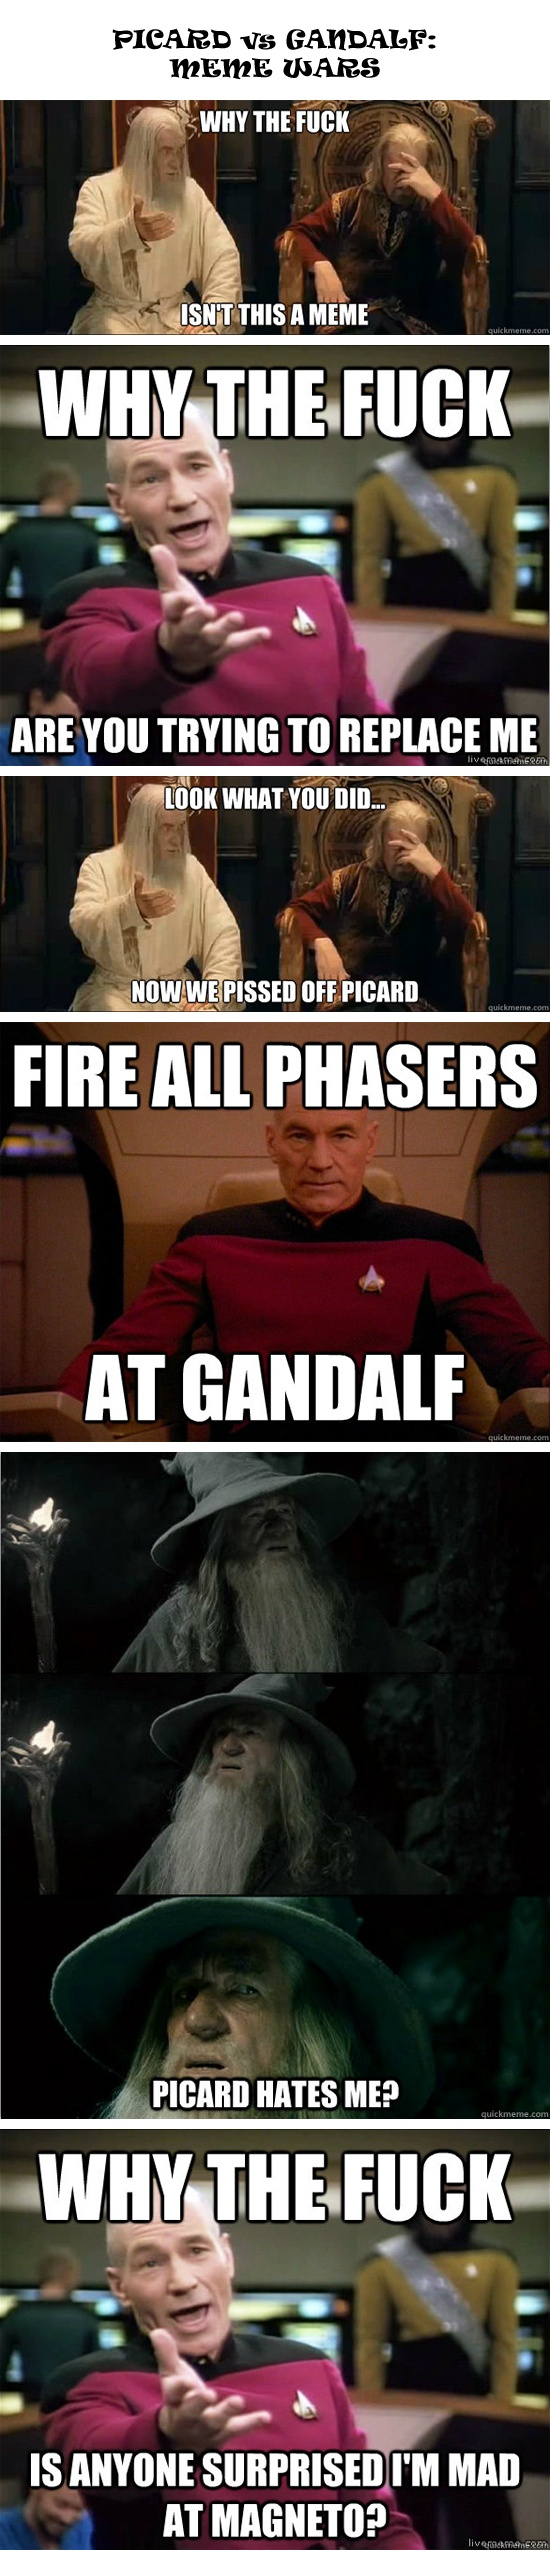 Picard vs Gandalf: Meme Wars!